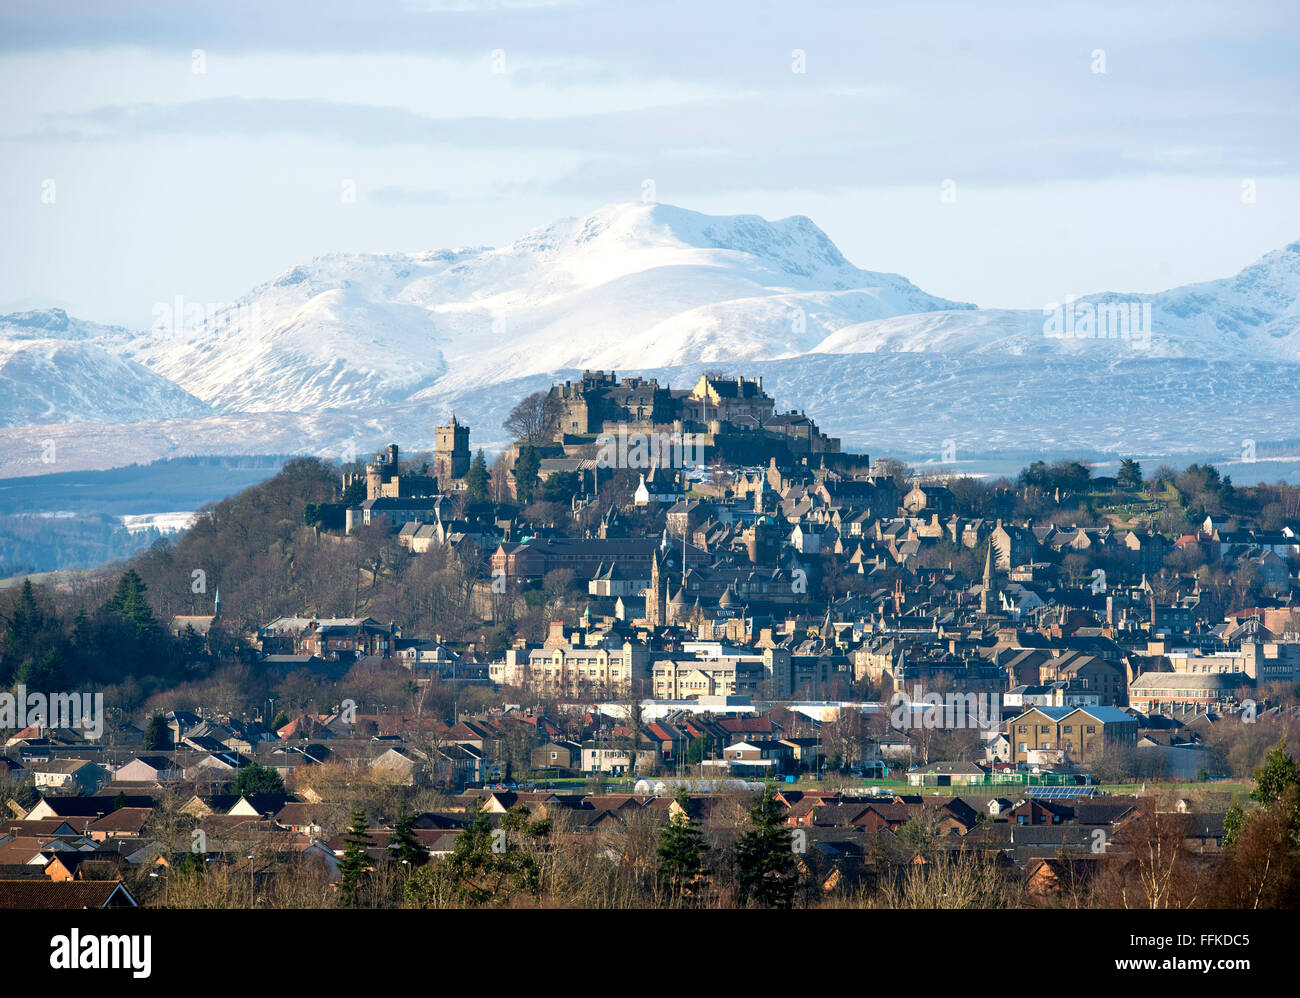 15th February 2016. Stirling Castle and town of Stirling, Scotland with the snow covered mountain (Stuc a Chroin - Stock Image